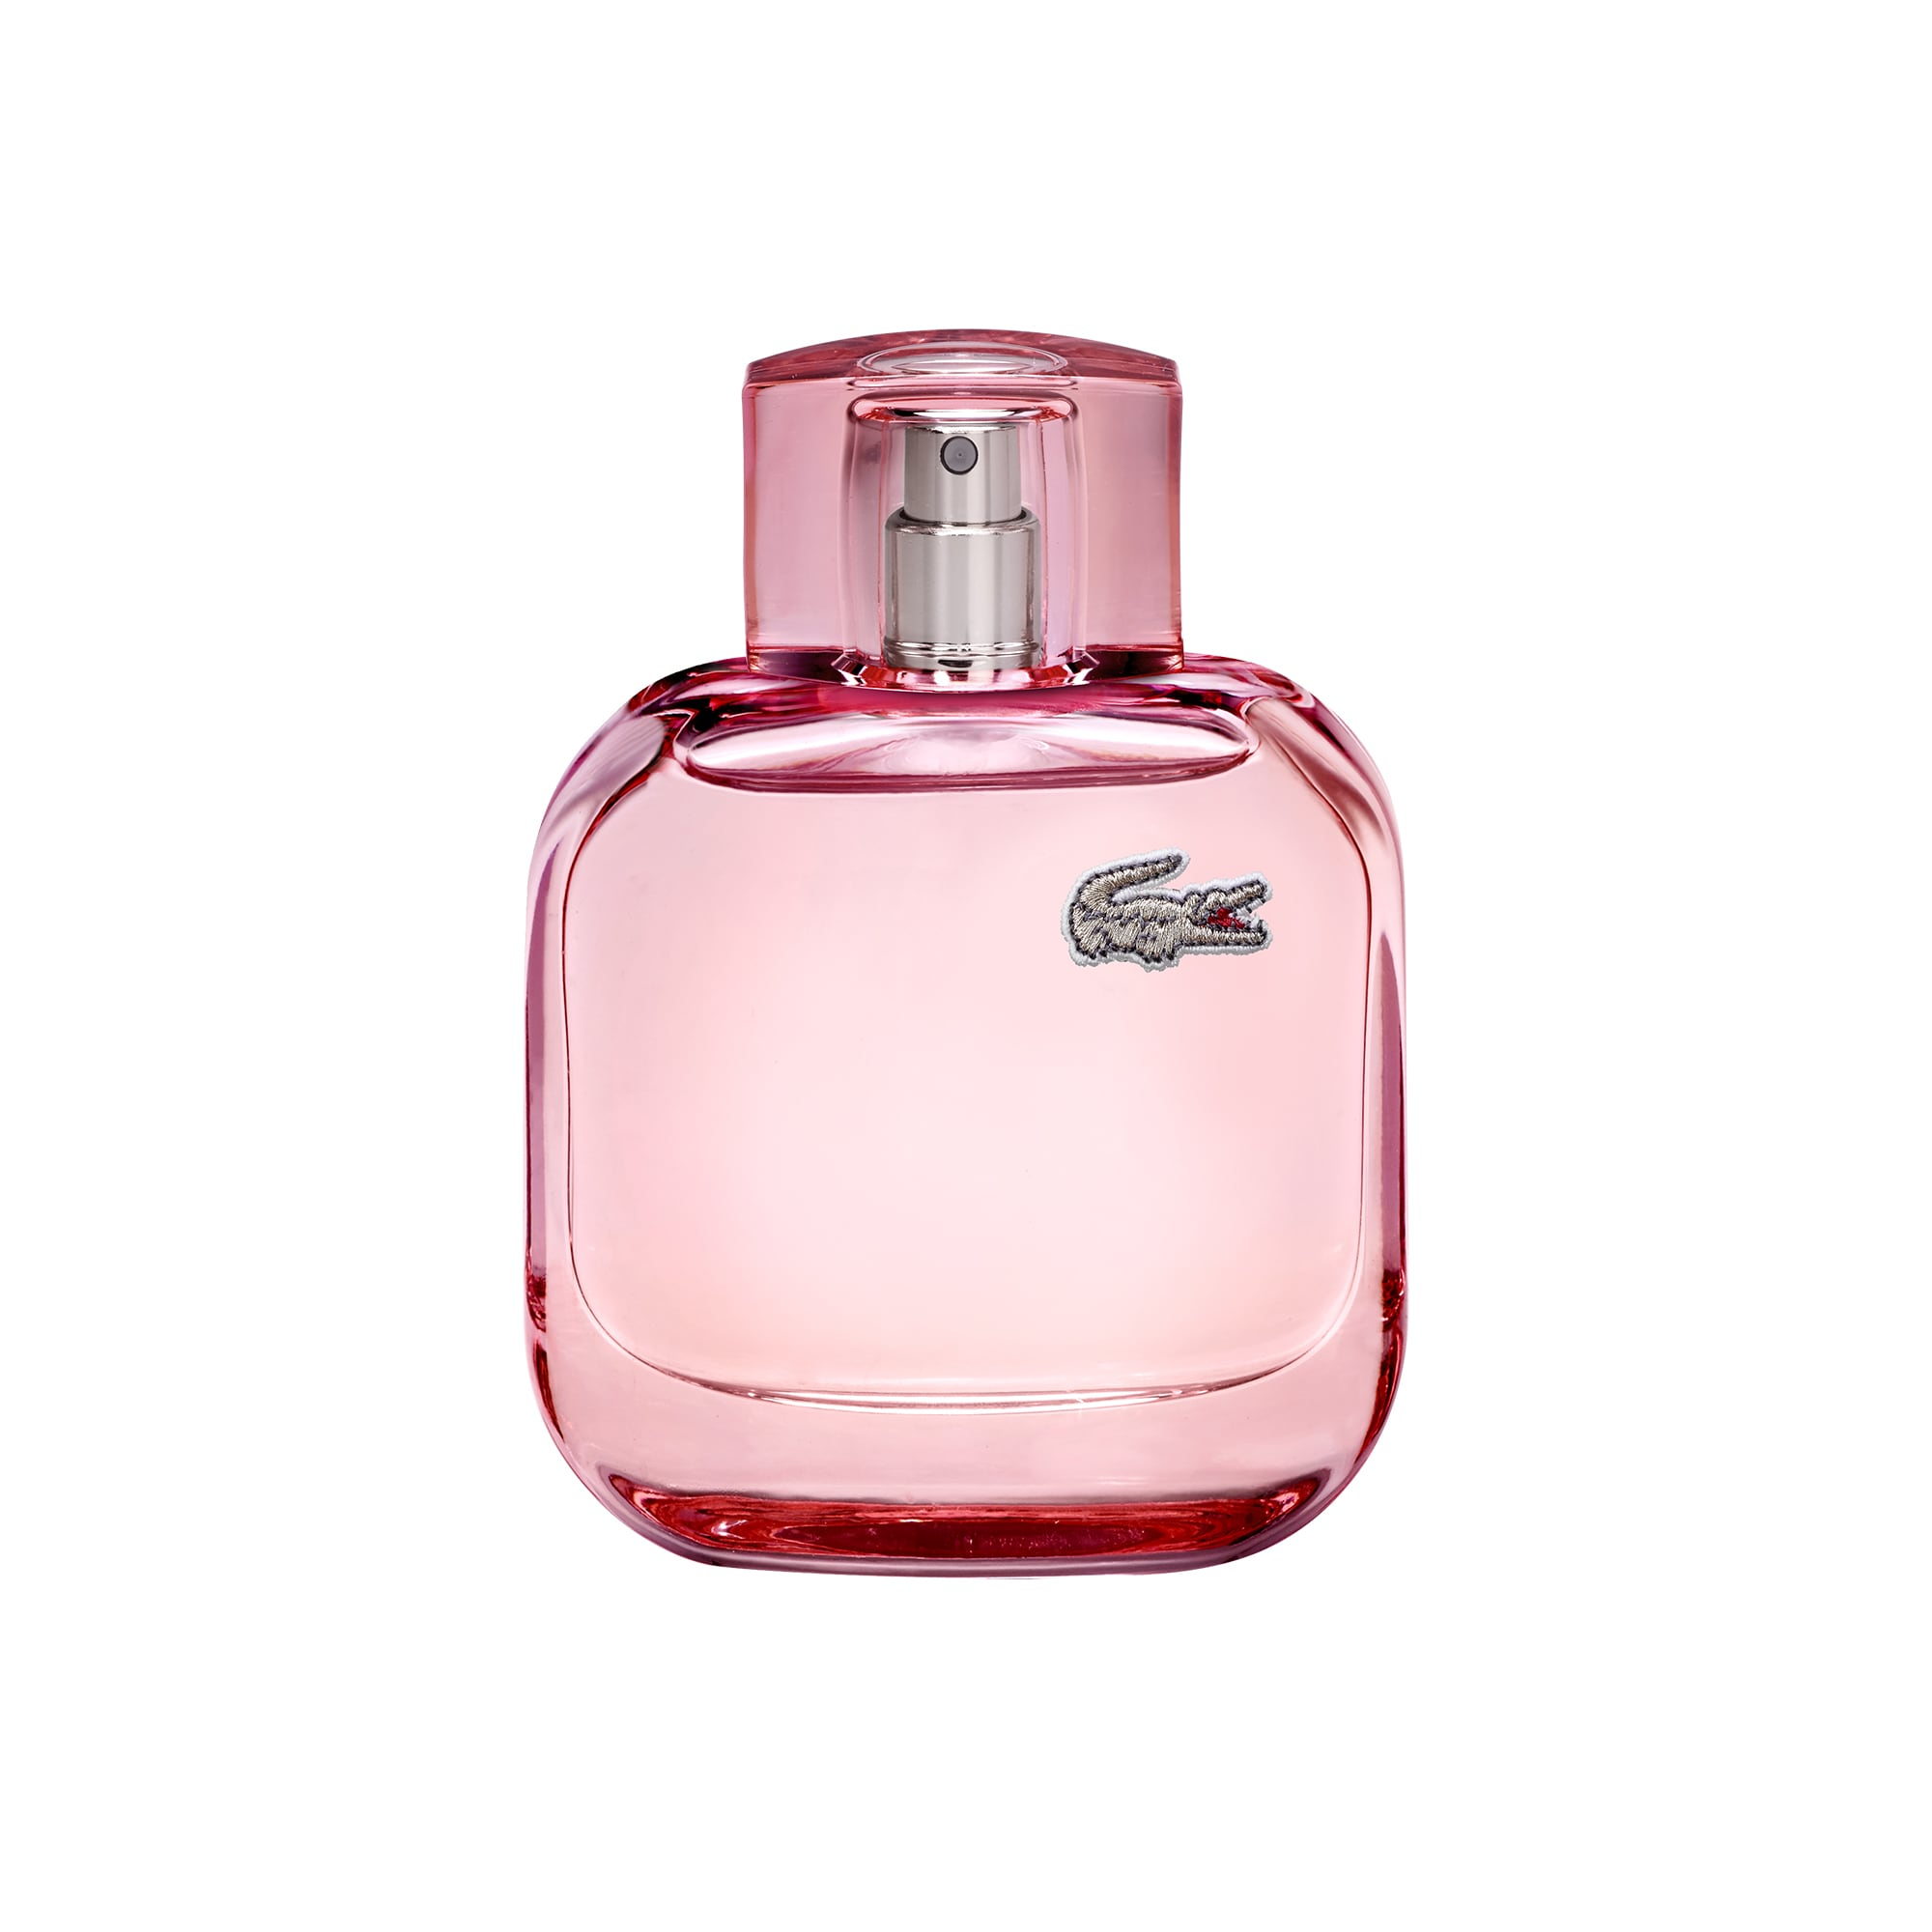 lacoste perfumes for women lacoste. Black Bedroom Furniture Sets. Home Design Ideas